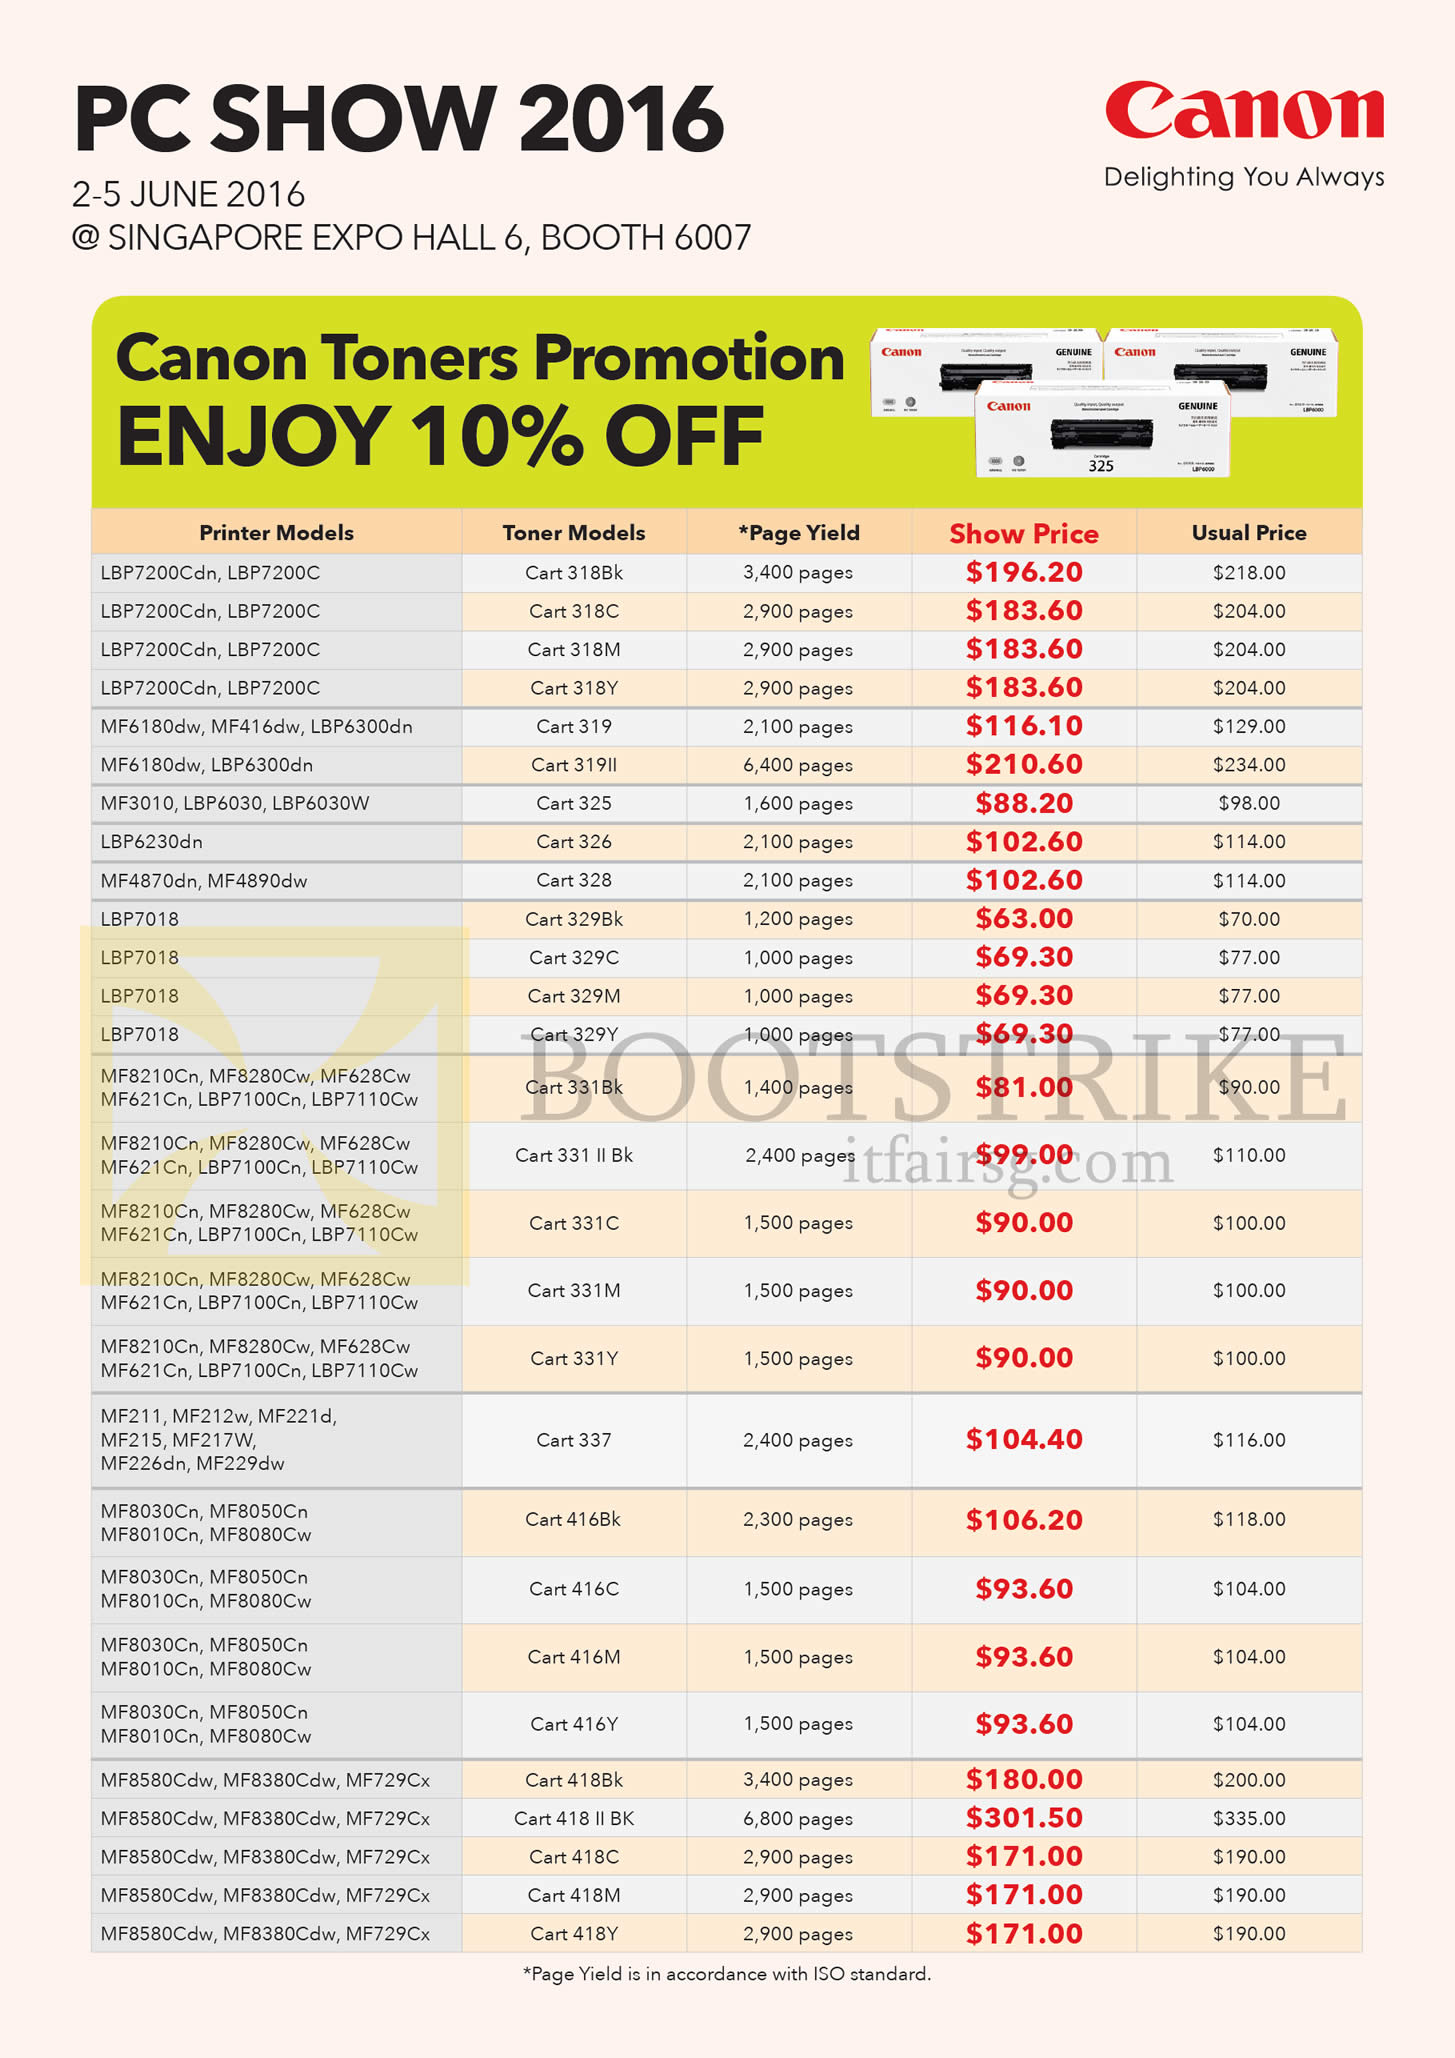 PC SHOW 2016 price list image brochure of Canon Toners Promotion 10 Percent Off